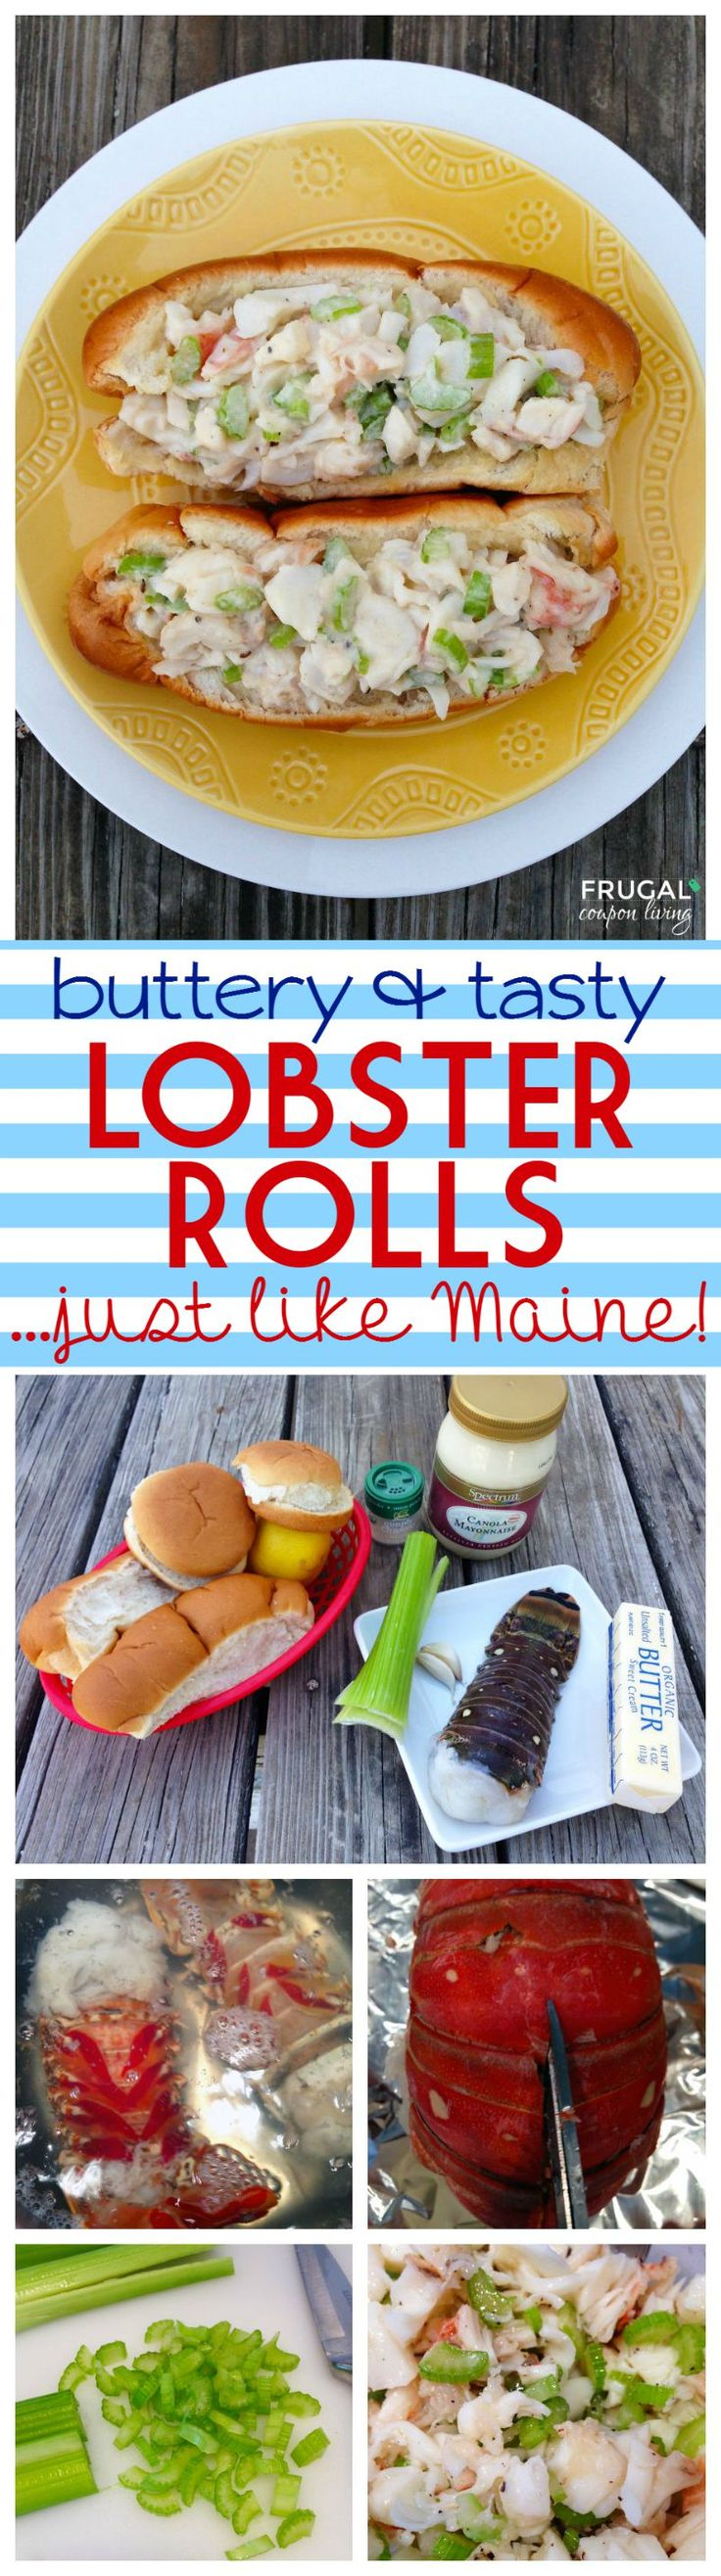 Buttery and Tasty Homemade Lobster Rolls on Frugal Coupon Living - the recipe is just like when I took a trip to Maine!